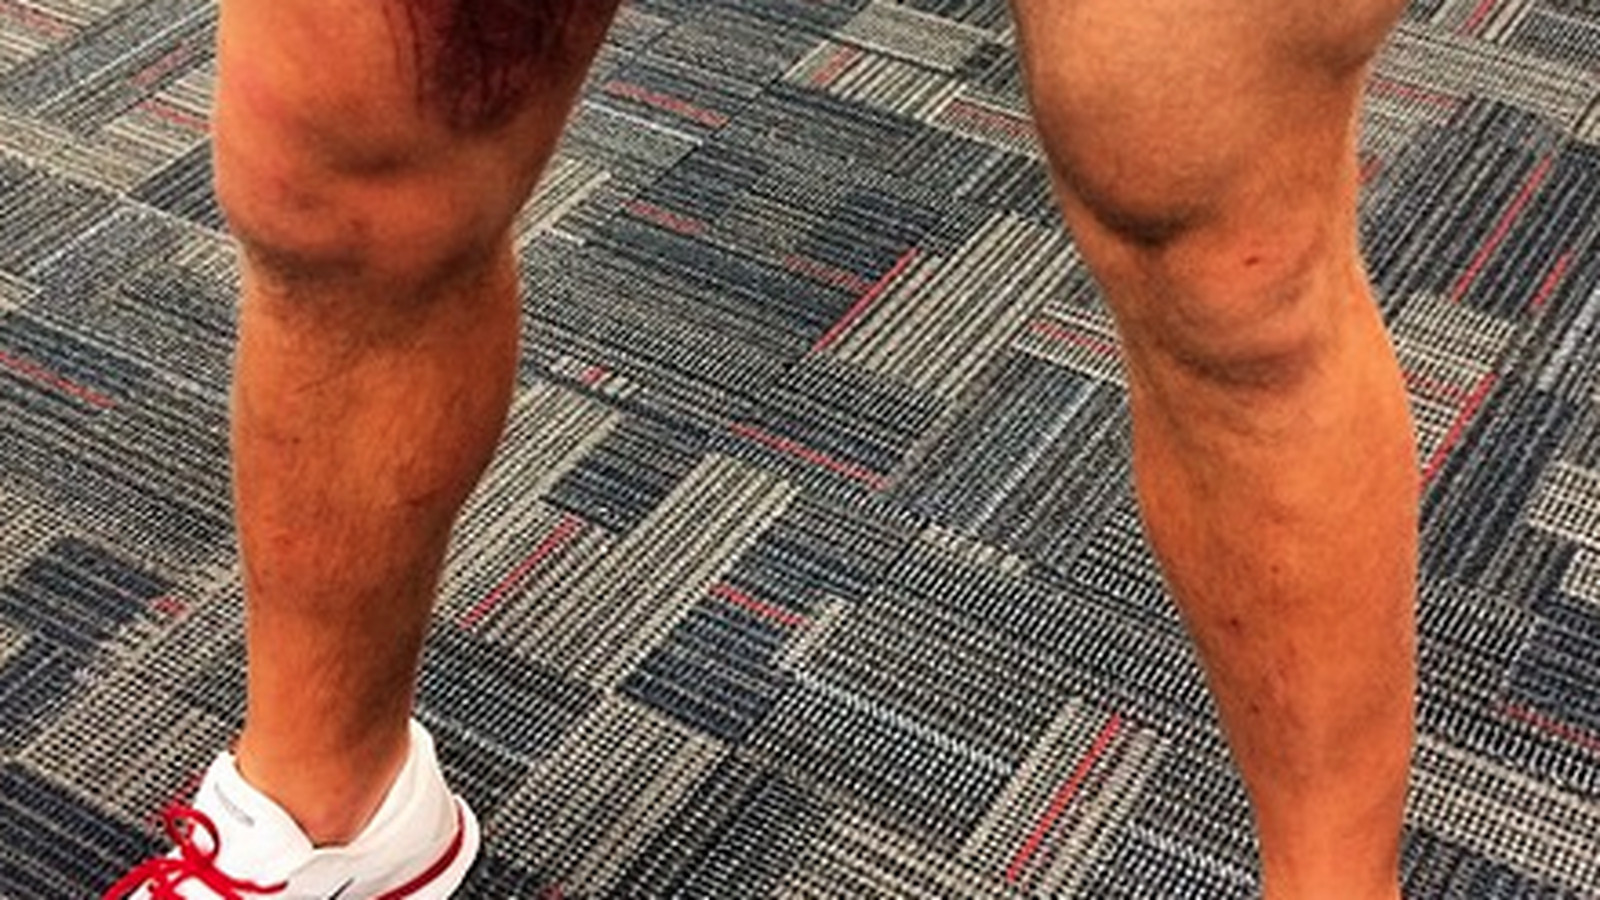 J.J. Watt posted the grossest picture of a leg bruise you